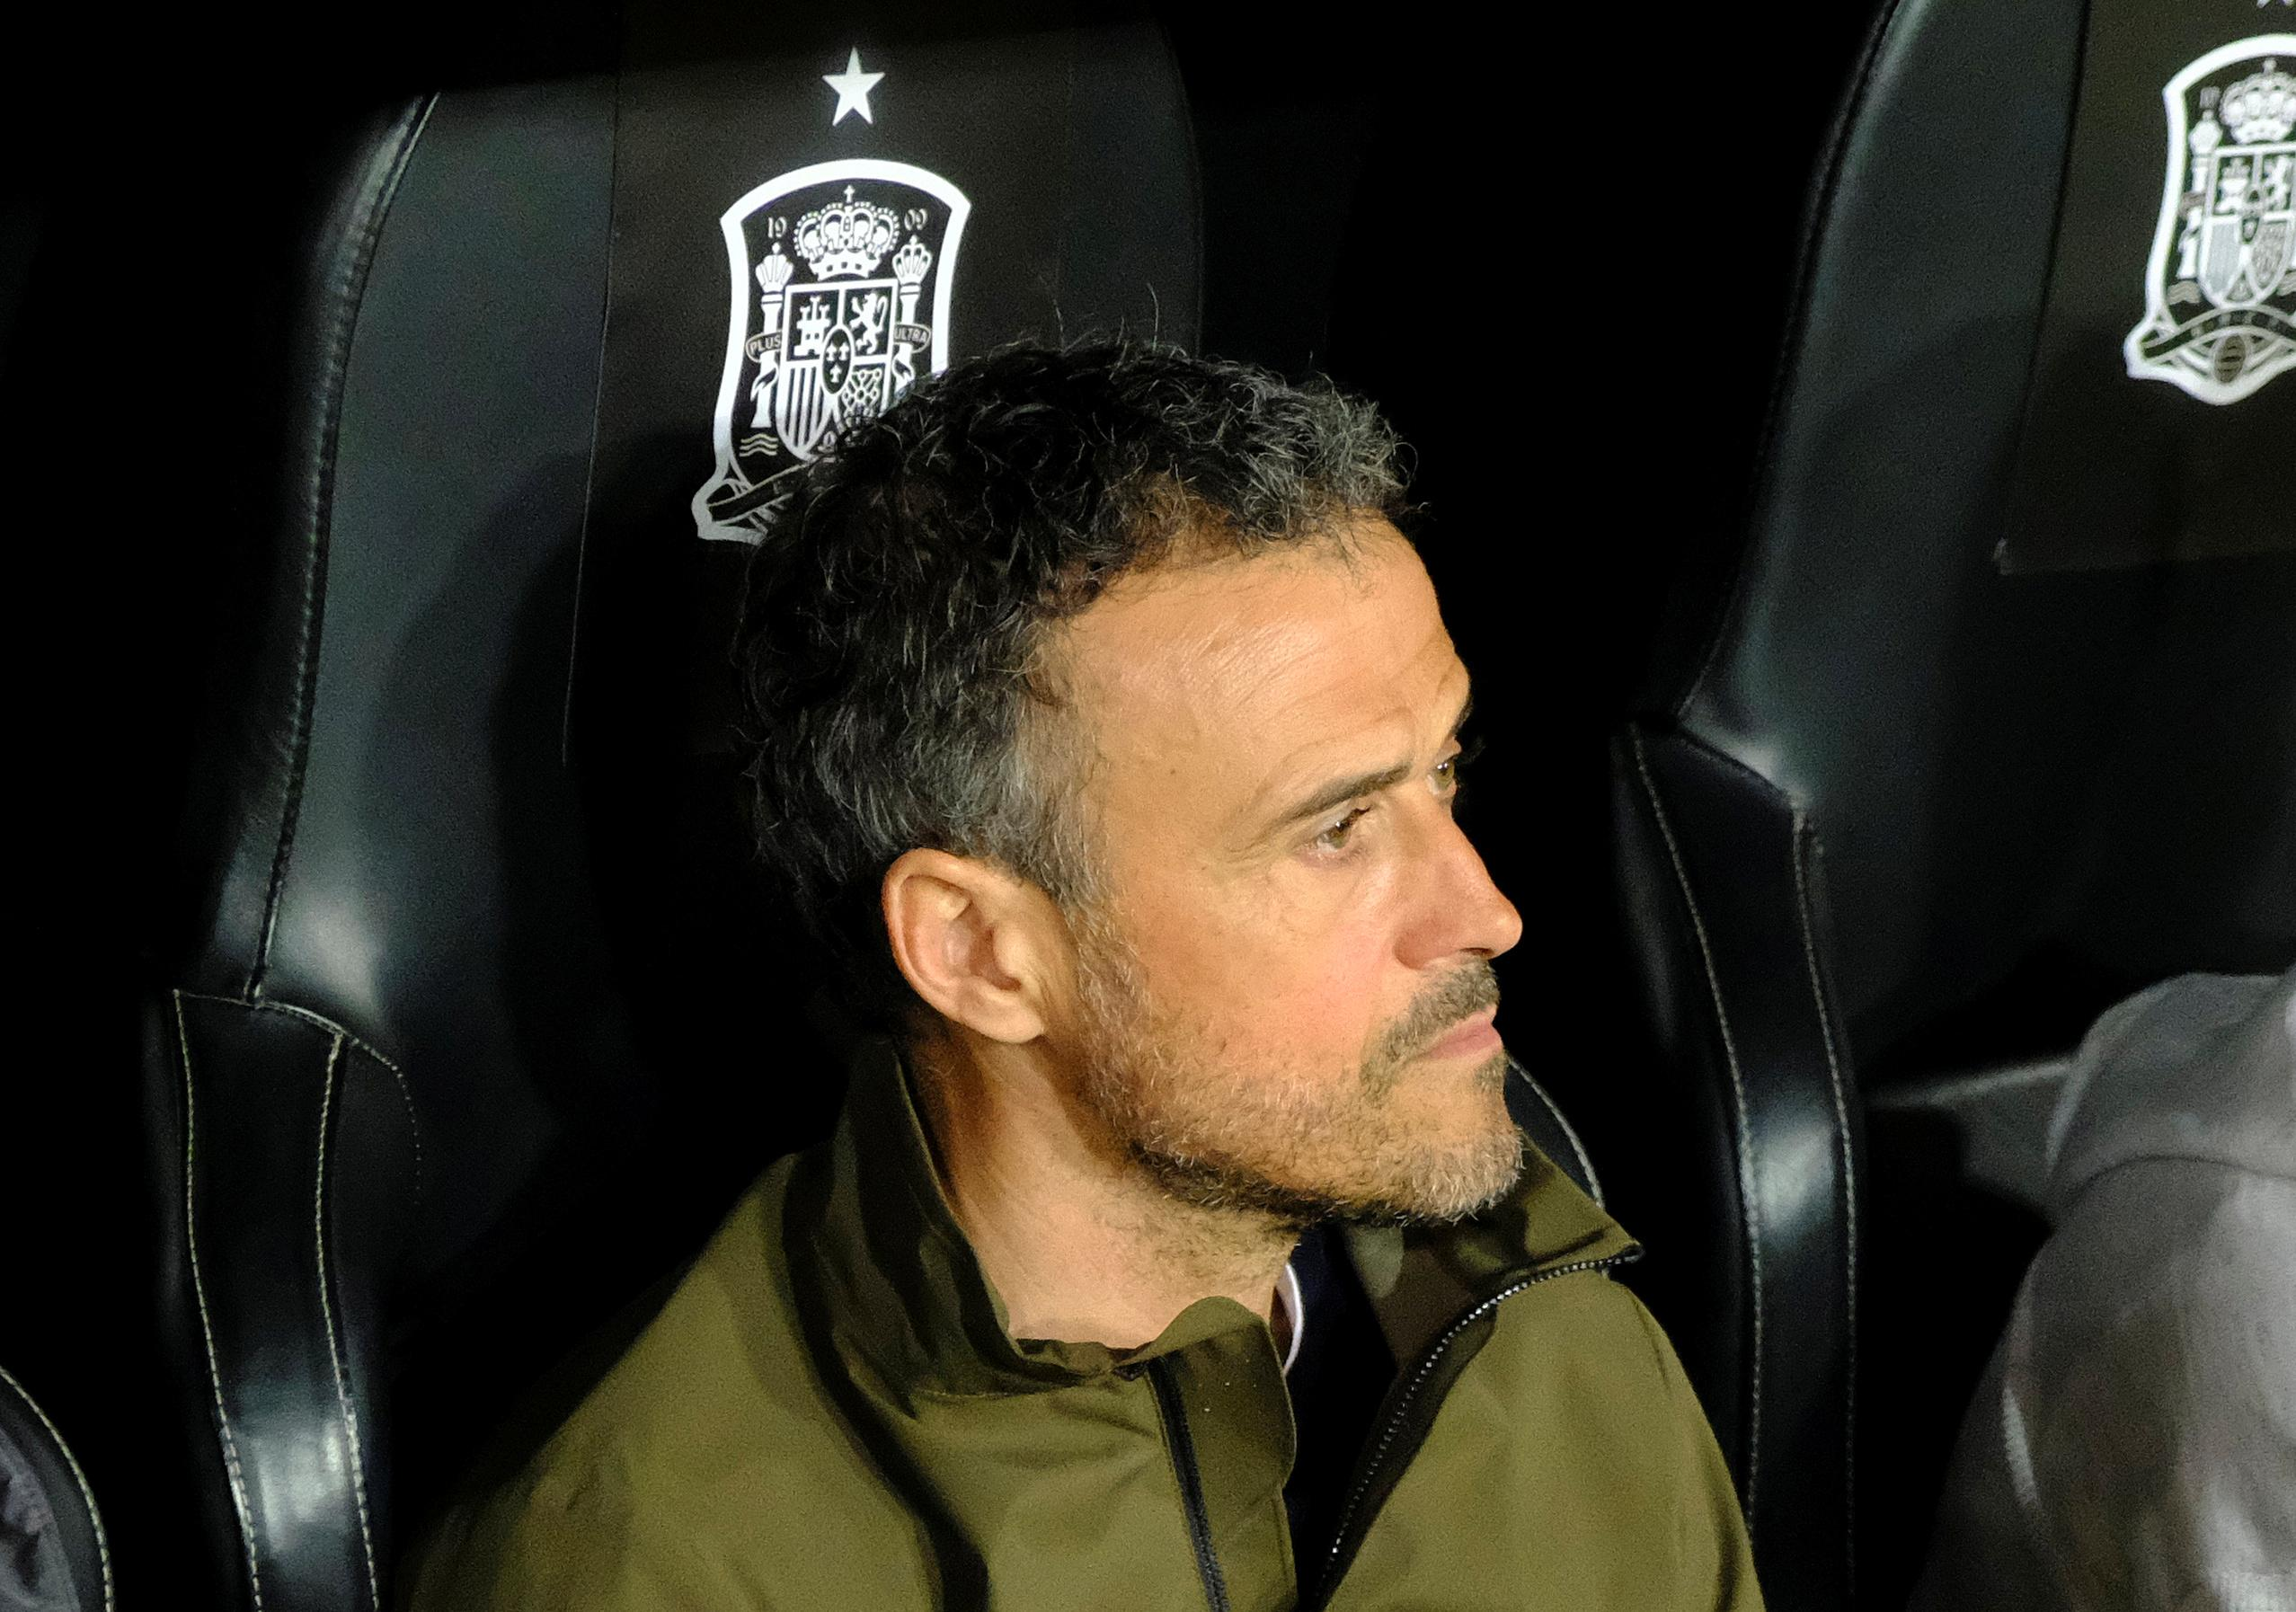 Spain coach Luis Enrique to quit, Moreno taking over - Marca